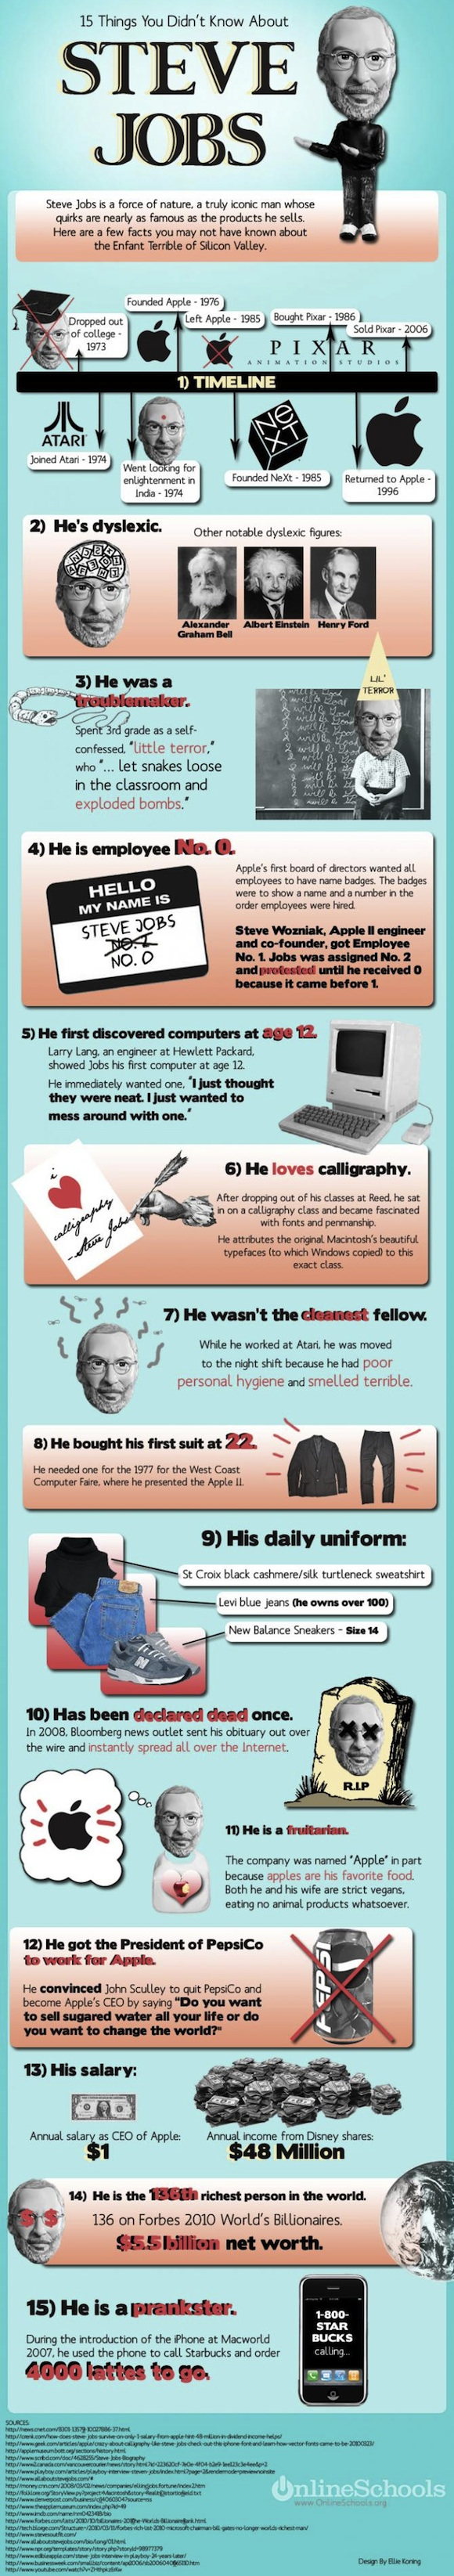 information | misc | 15 things you didn't know about Steve Jobs